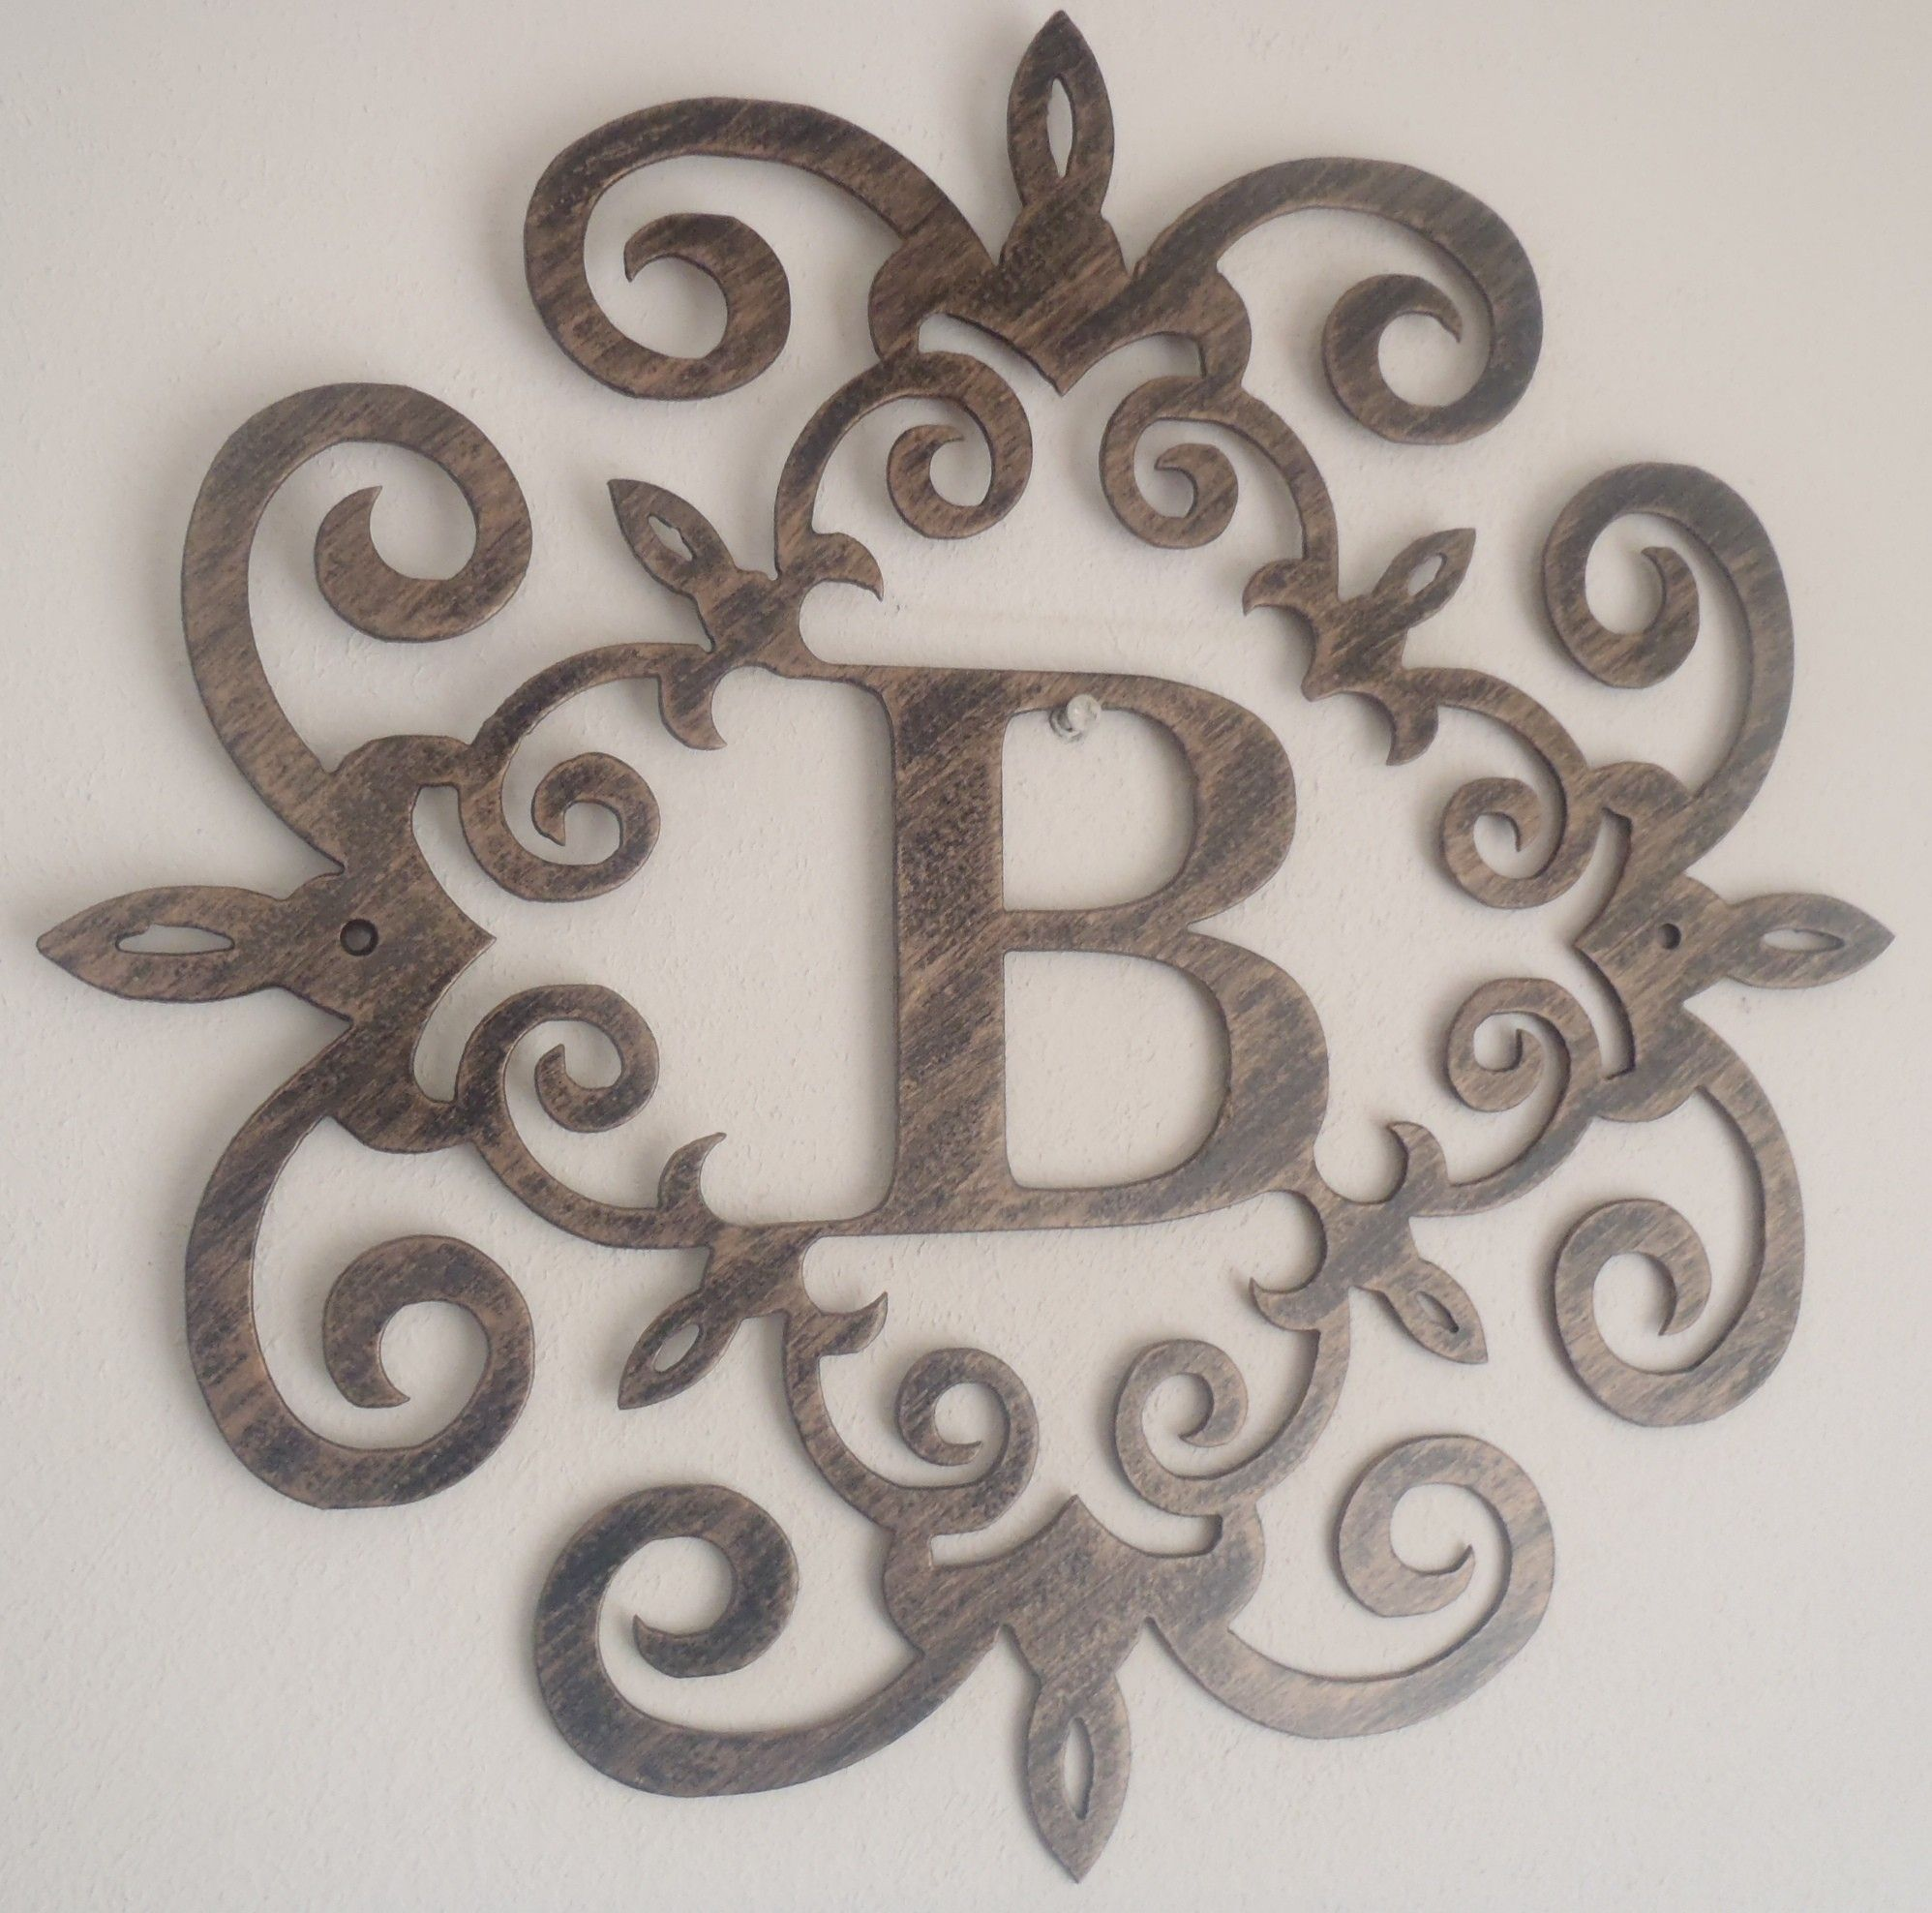 Metal Scroll Wall Decor family initial, monogram inside a metal scroll with b letter, wall